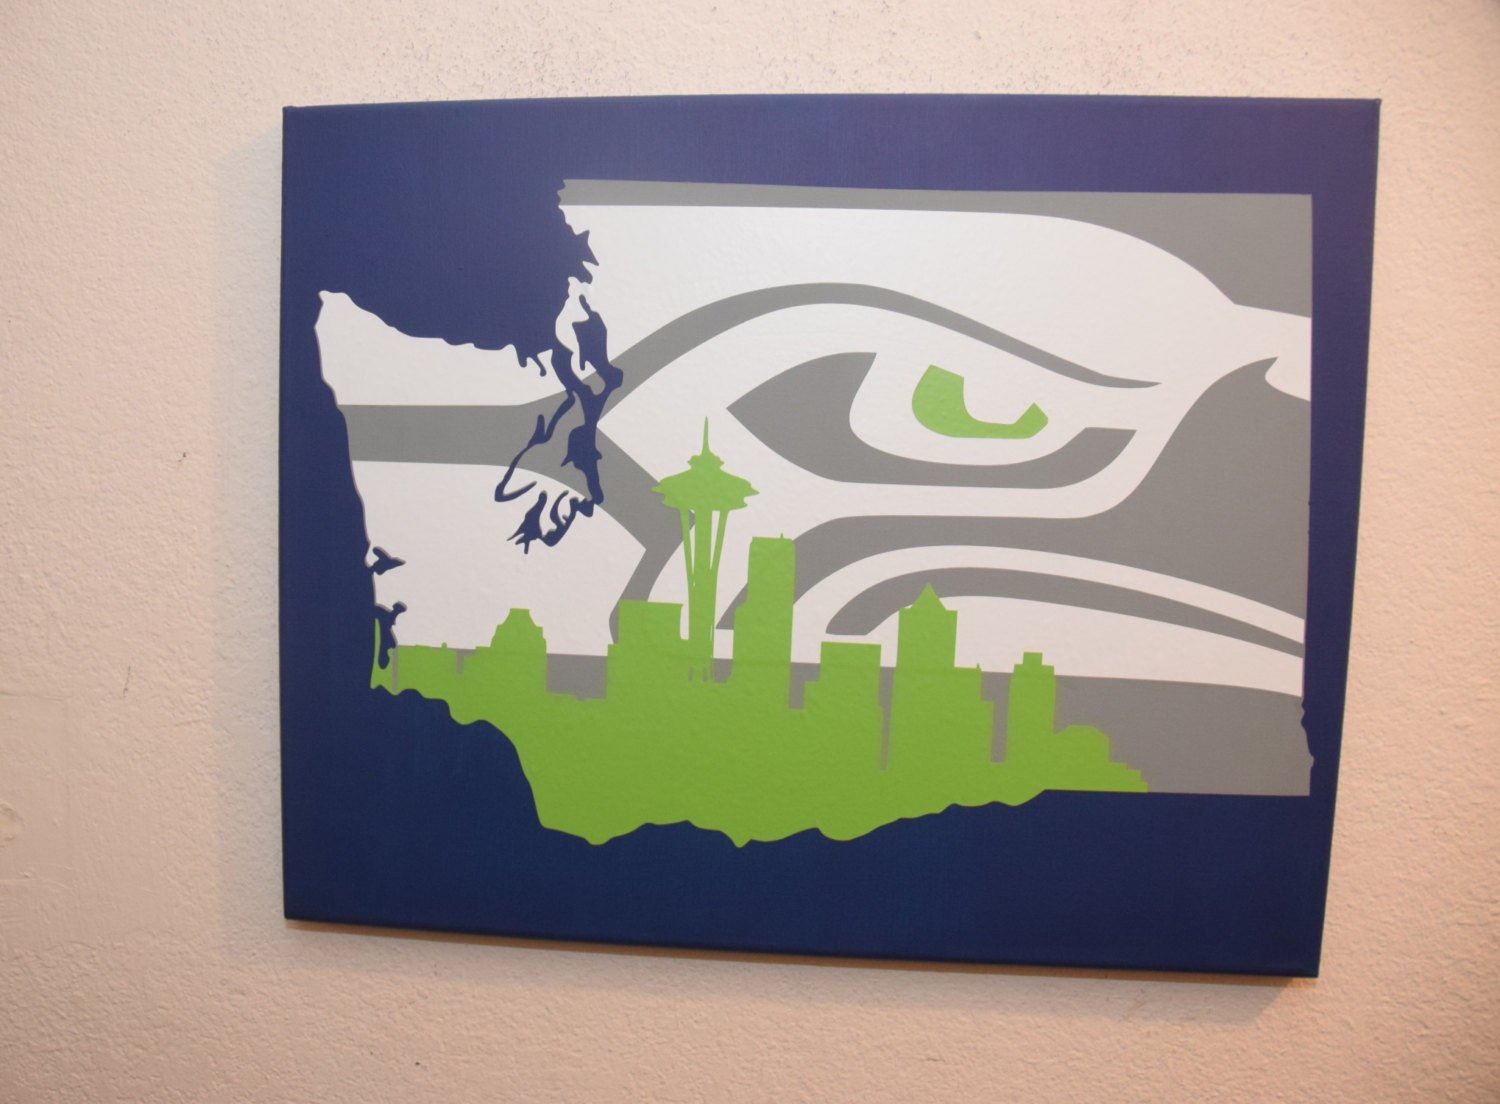 Seattle Wall Art washington state sign seattle seahawks sign unique seattle